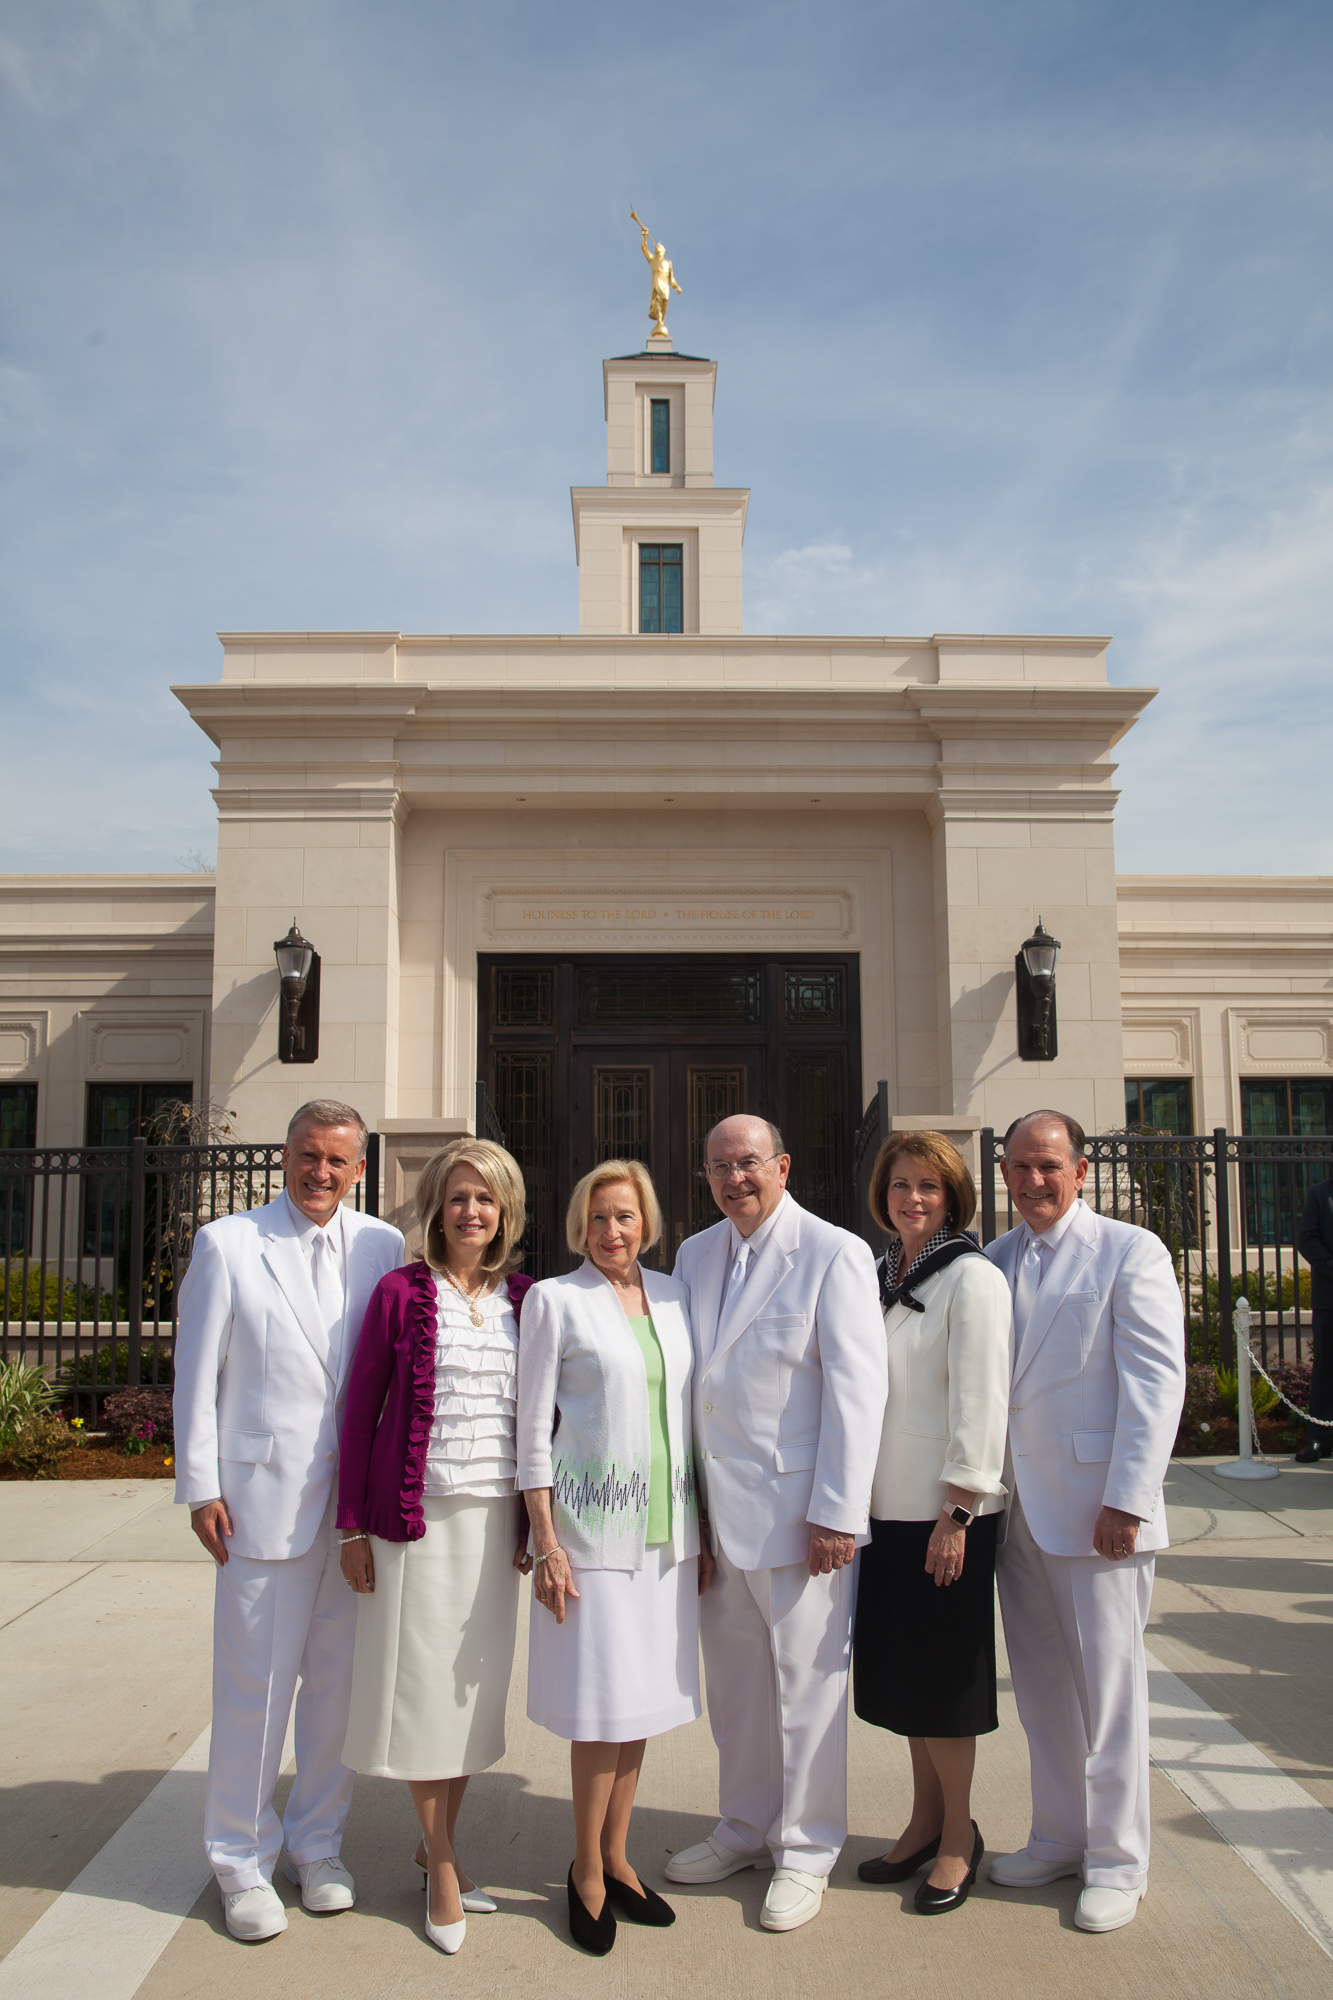 Elder Quentin L. Cook of the Quorum of the Twelve Apostles, center right, stands in front of the Baton Rouge Louisiana Temple with his wife, Sister Mary Cook, center left; Elder Kevin R. Duncan, General Authority Seventy and executive director of the Church's Temple Department, and his wife, Sister Nancy Duncan, left; and Elder James B. Martino, General Authority Seventy and president of the North America Southeast Area, and his wife, Sister Jennie B. Martino, right, on Sunday, Nov. 17, 2019.